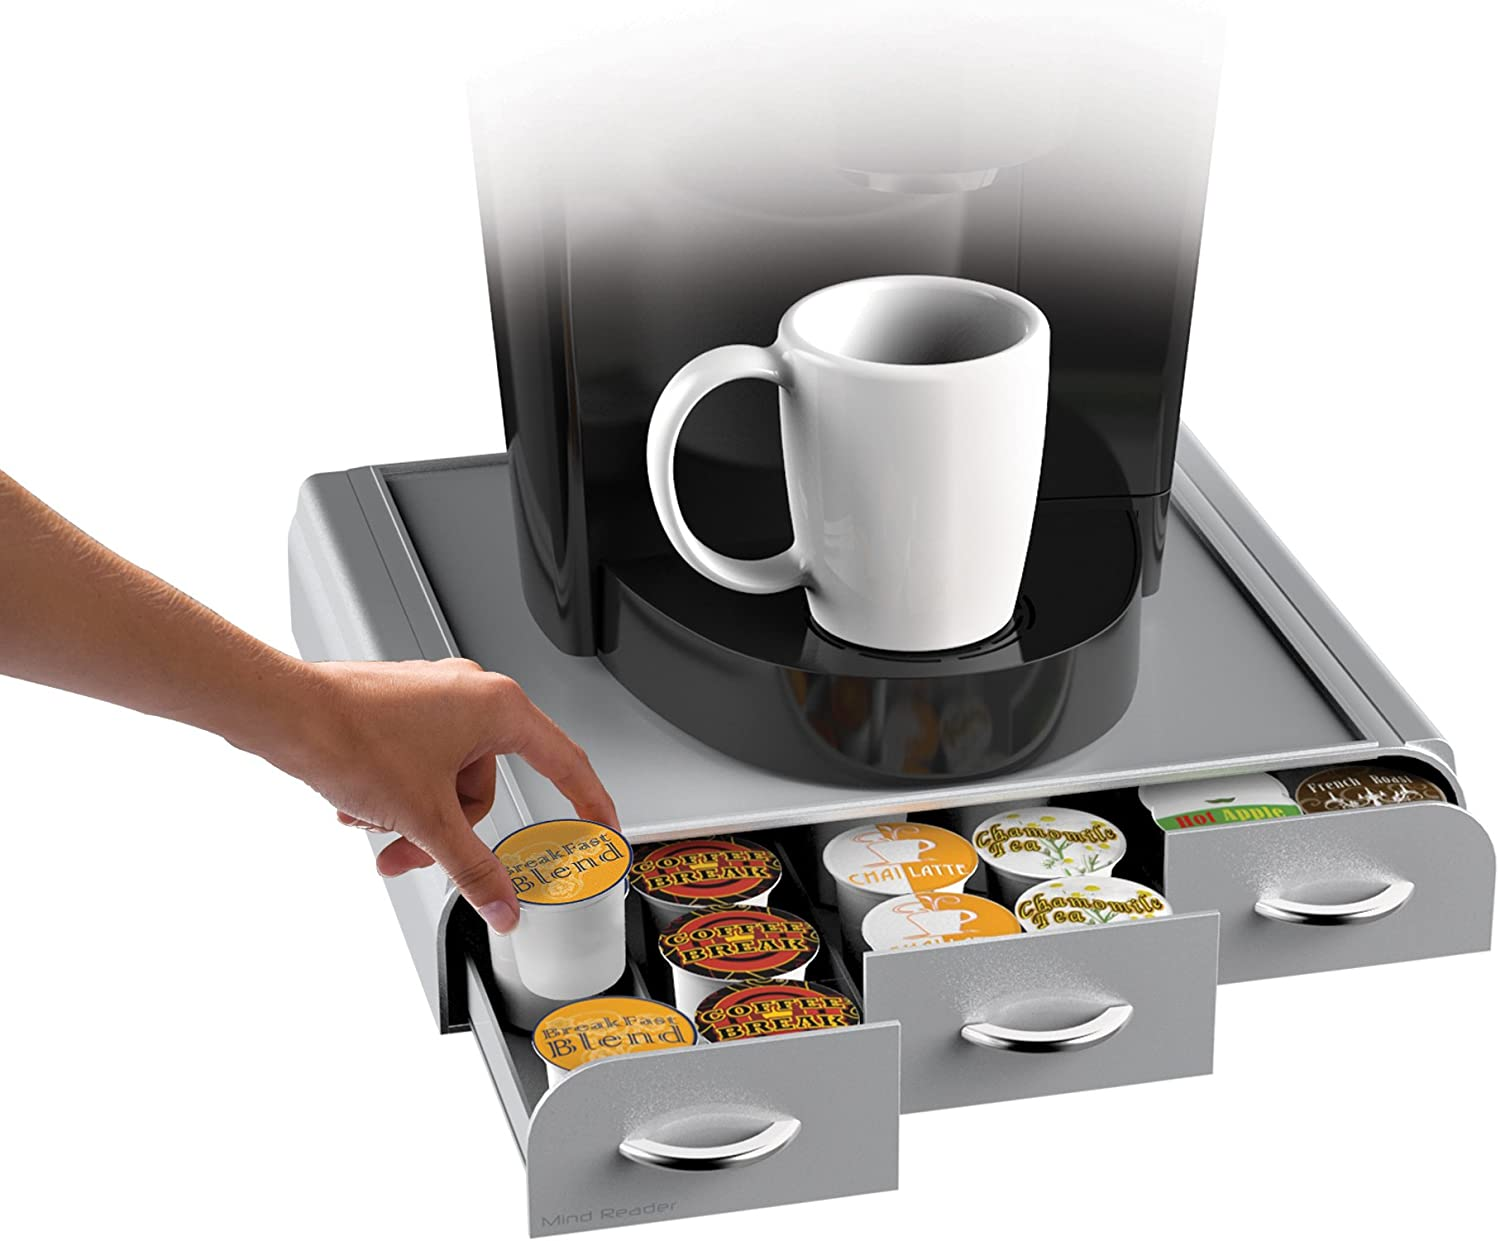 Mind Reader 36 Capacity K-Cup, Dolce Gusto, CBTL, Verismo, Single Serve Coffee Pod Holder Drawer, Red Silver